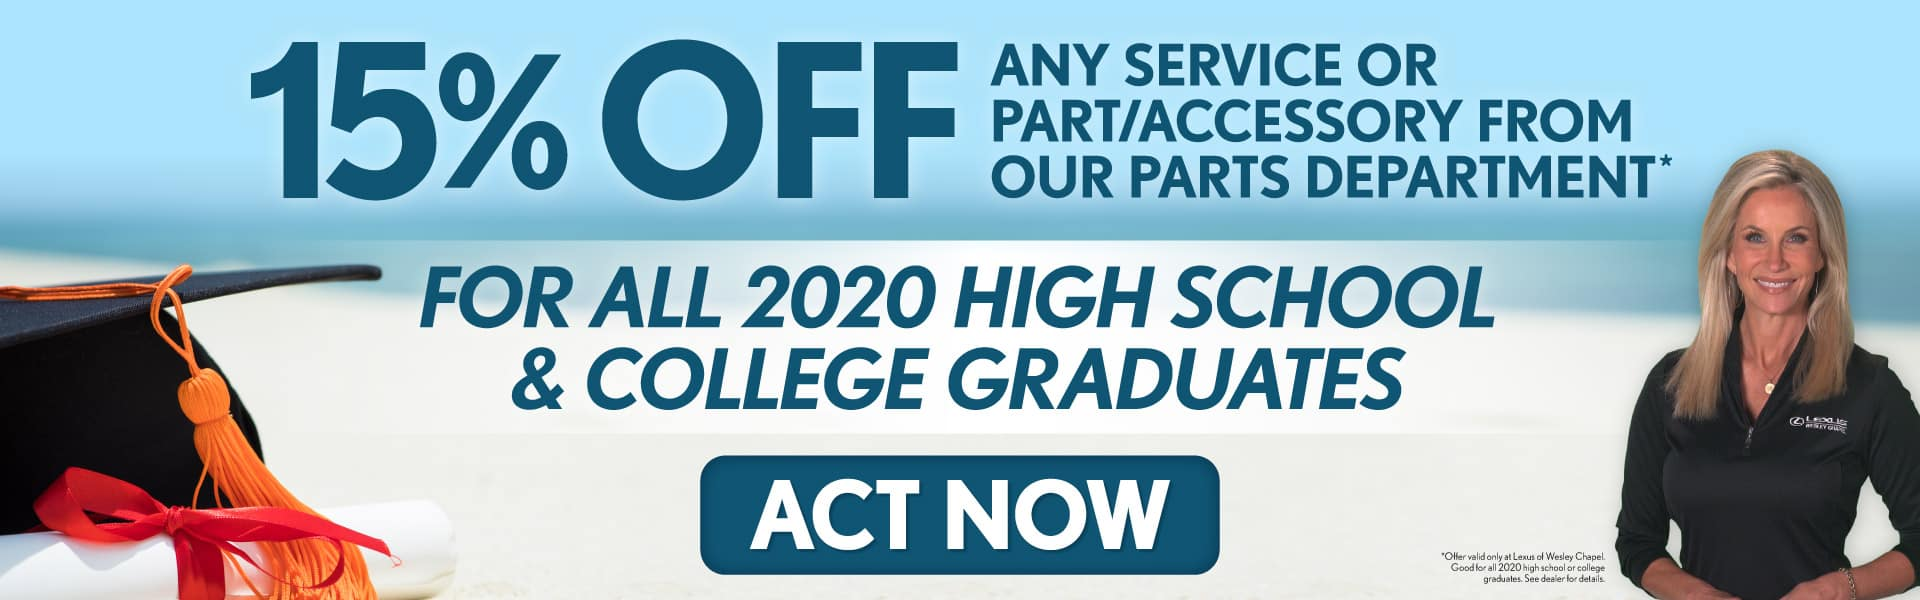 15% Off Any Service, Part, or Accessory for all 2020 Graduates*